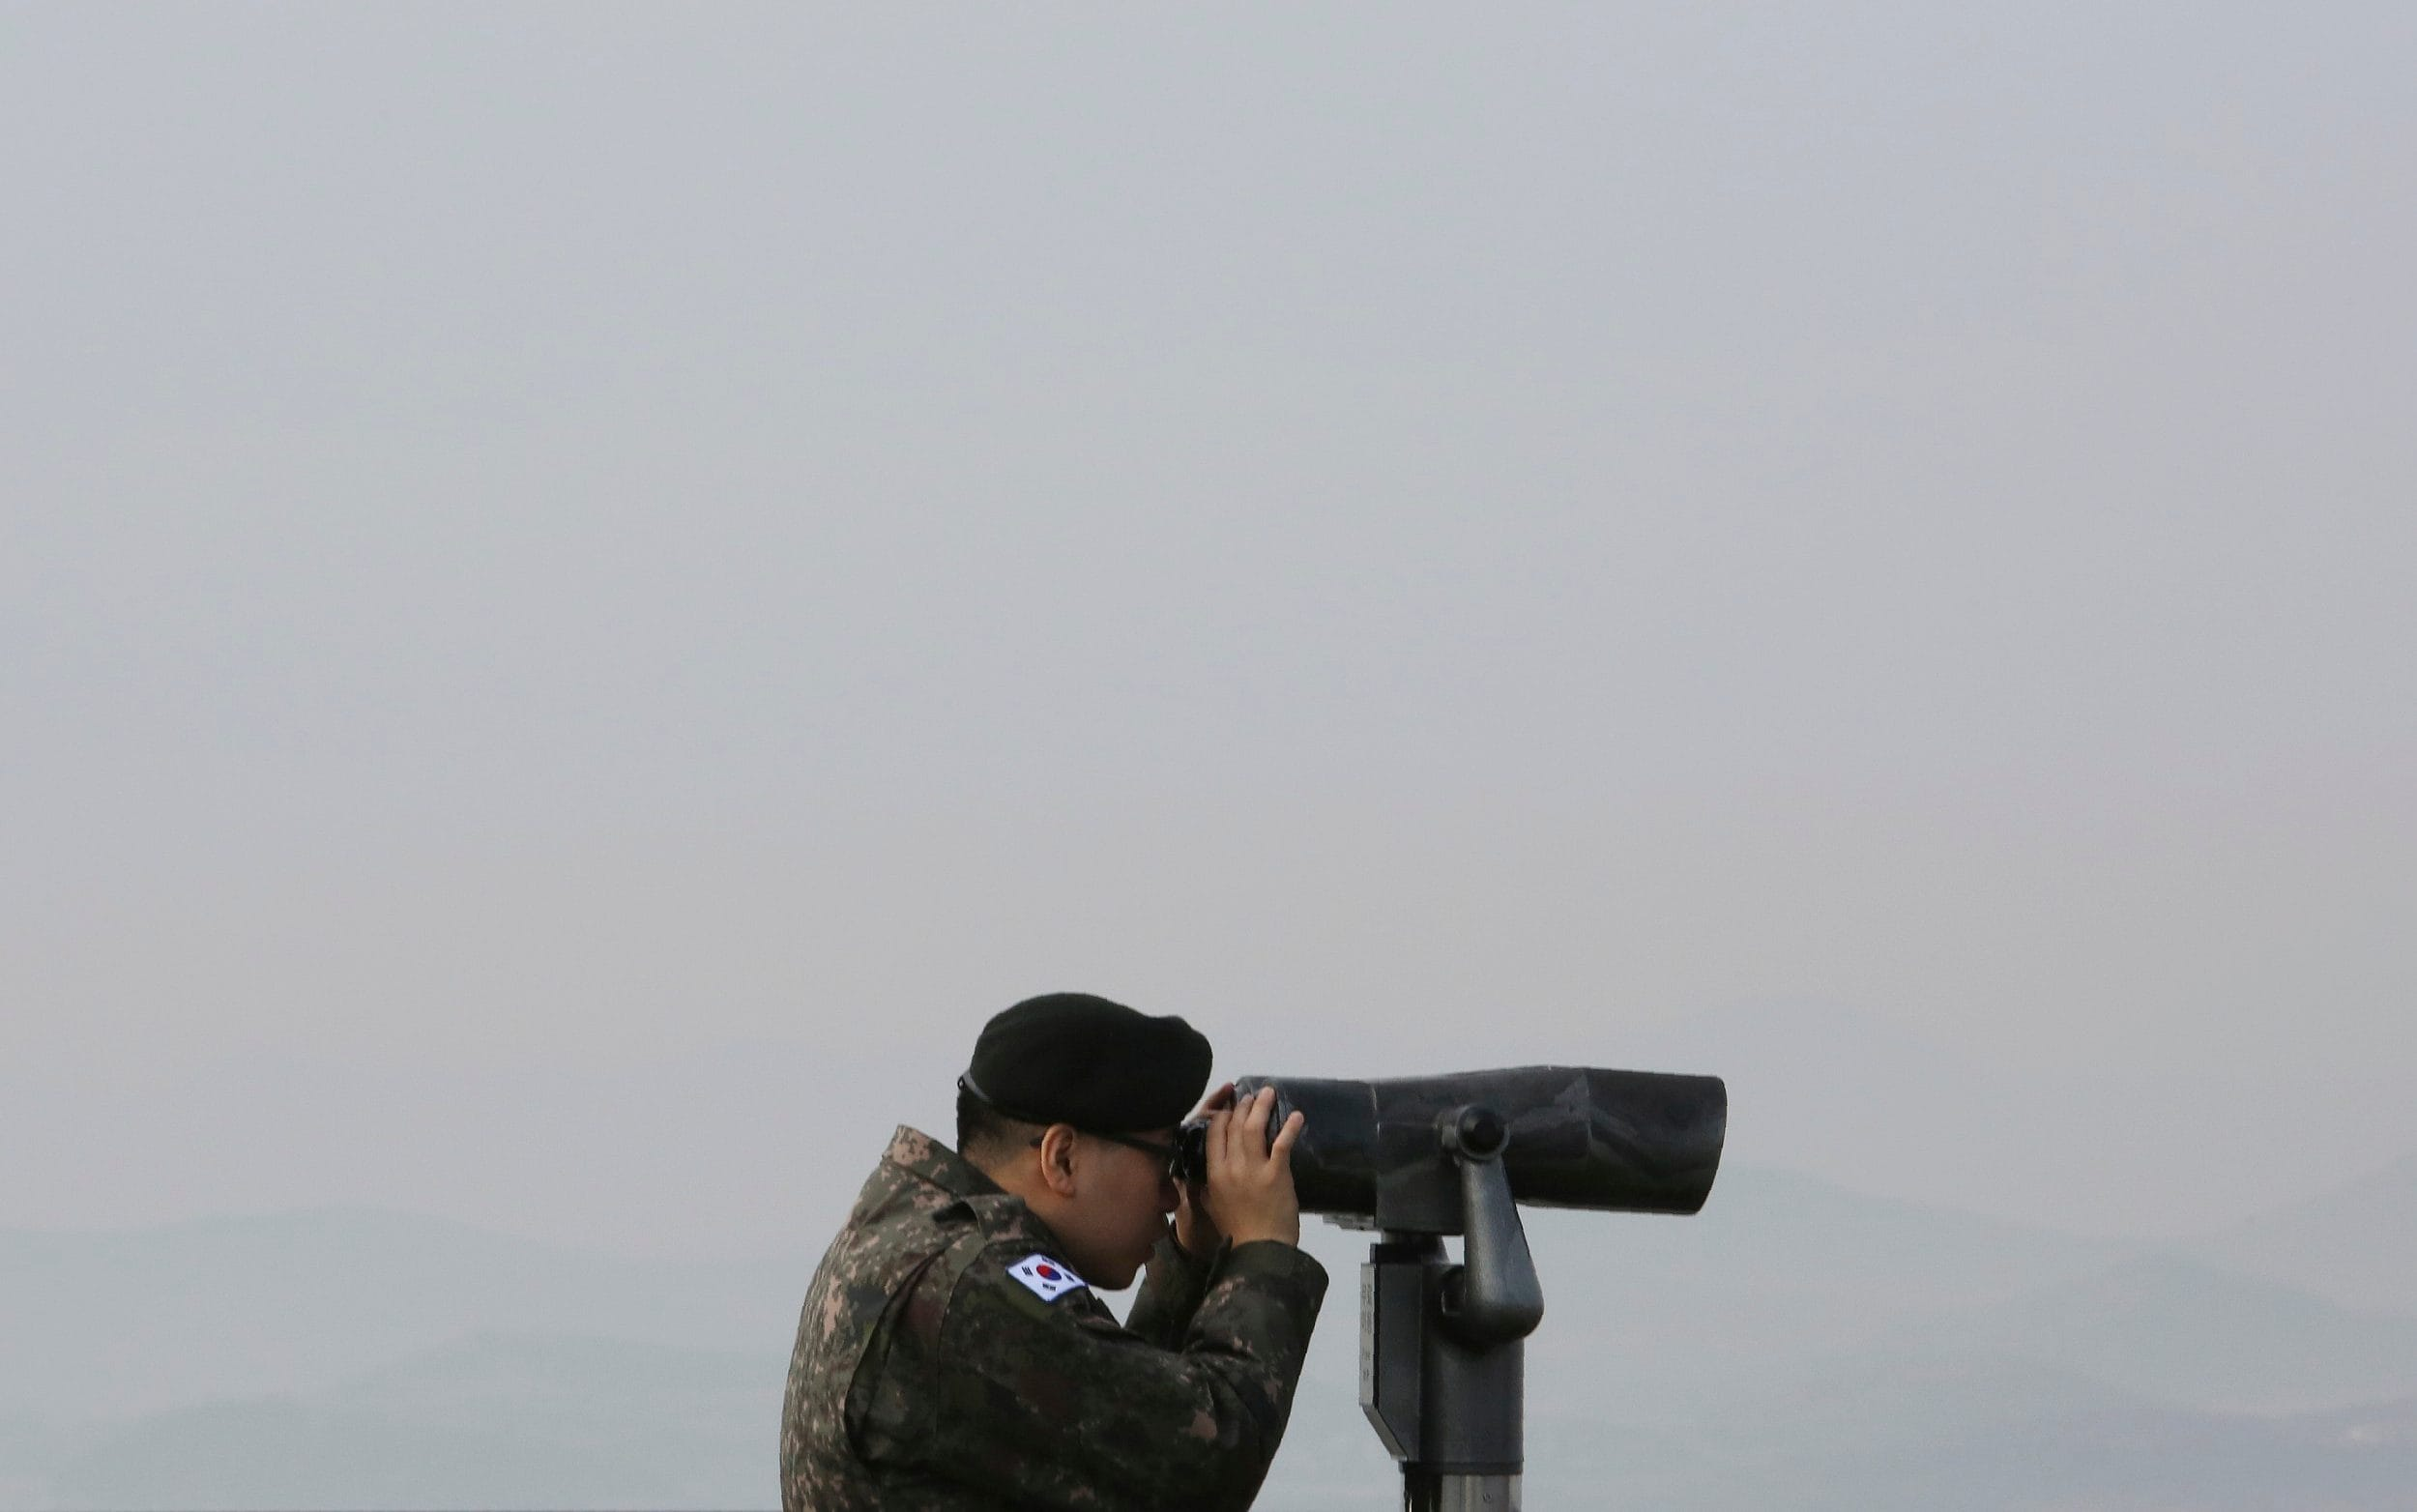 US base near North Korea accidentally sounds attack alarm instead of bugle call